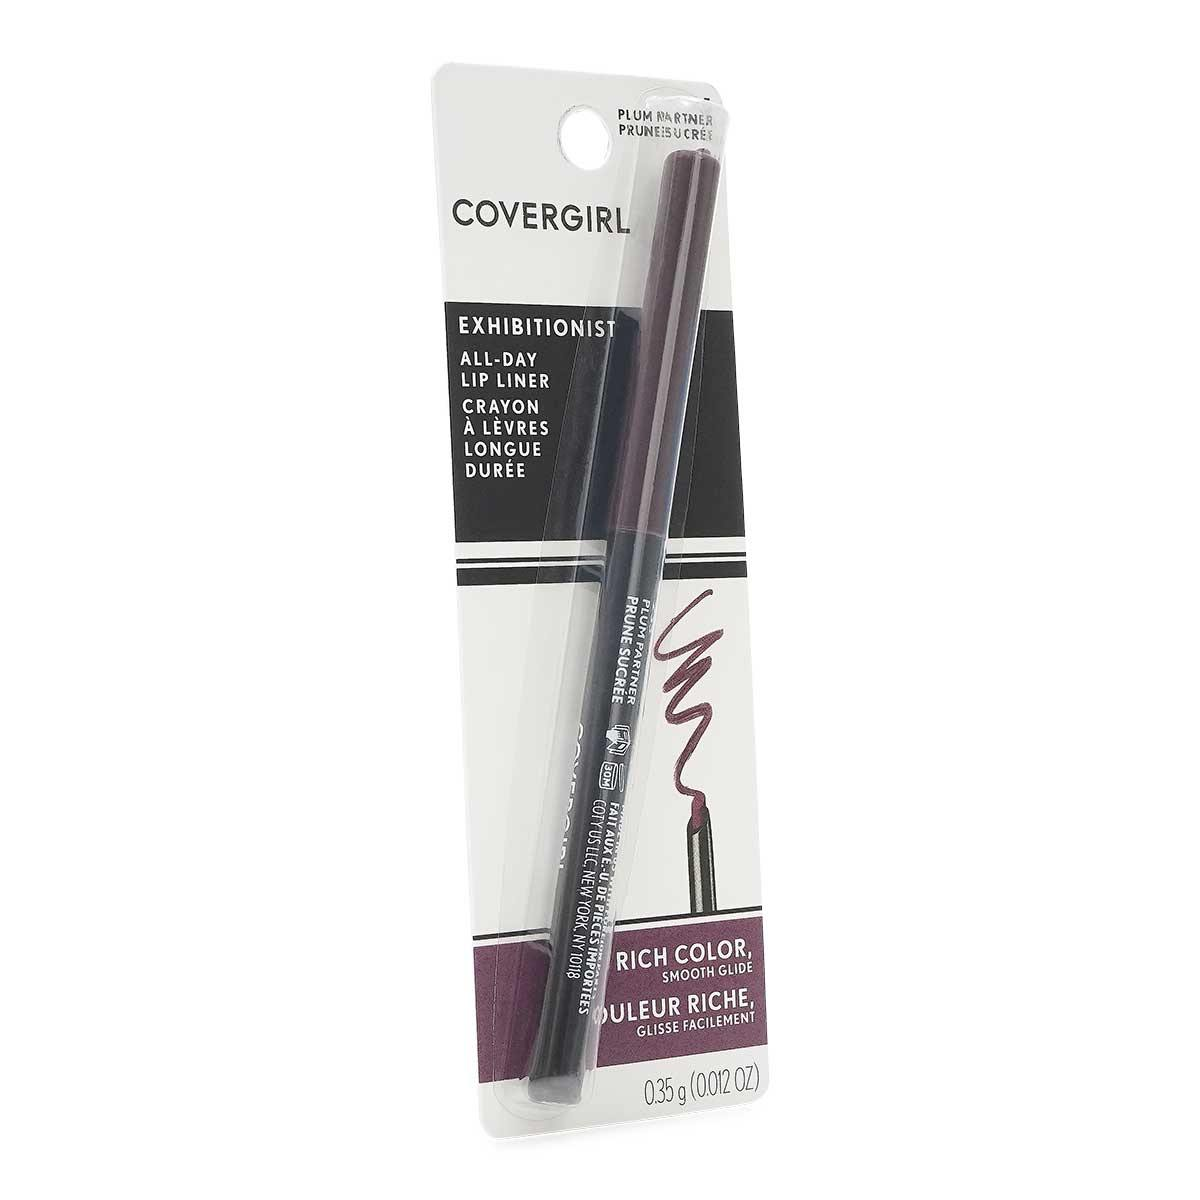 COVERGIRL ALL DAY LIP LINER- PLUM PARTNER - Case of 24 units